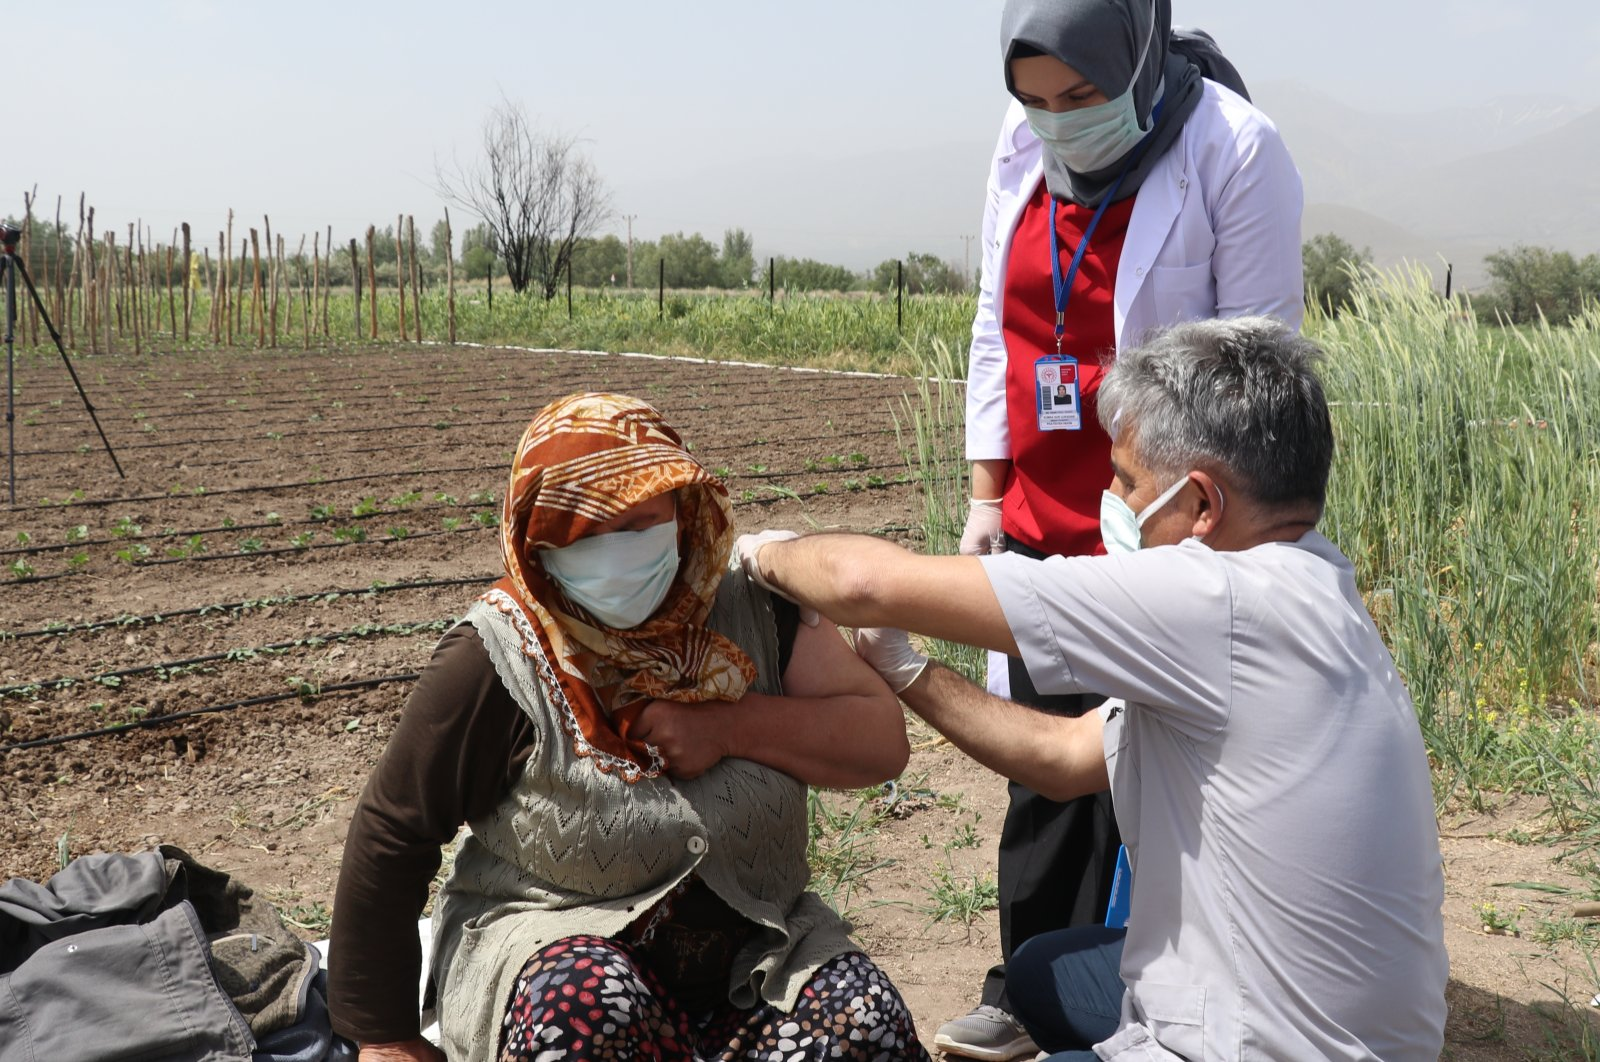 Vesile Ayan receives her first dose of a COVID-19 vaccine, in Erzincan, eastern Turkey, May 24, 2021. (AA PHOTO)